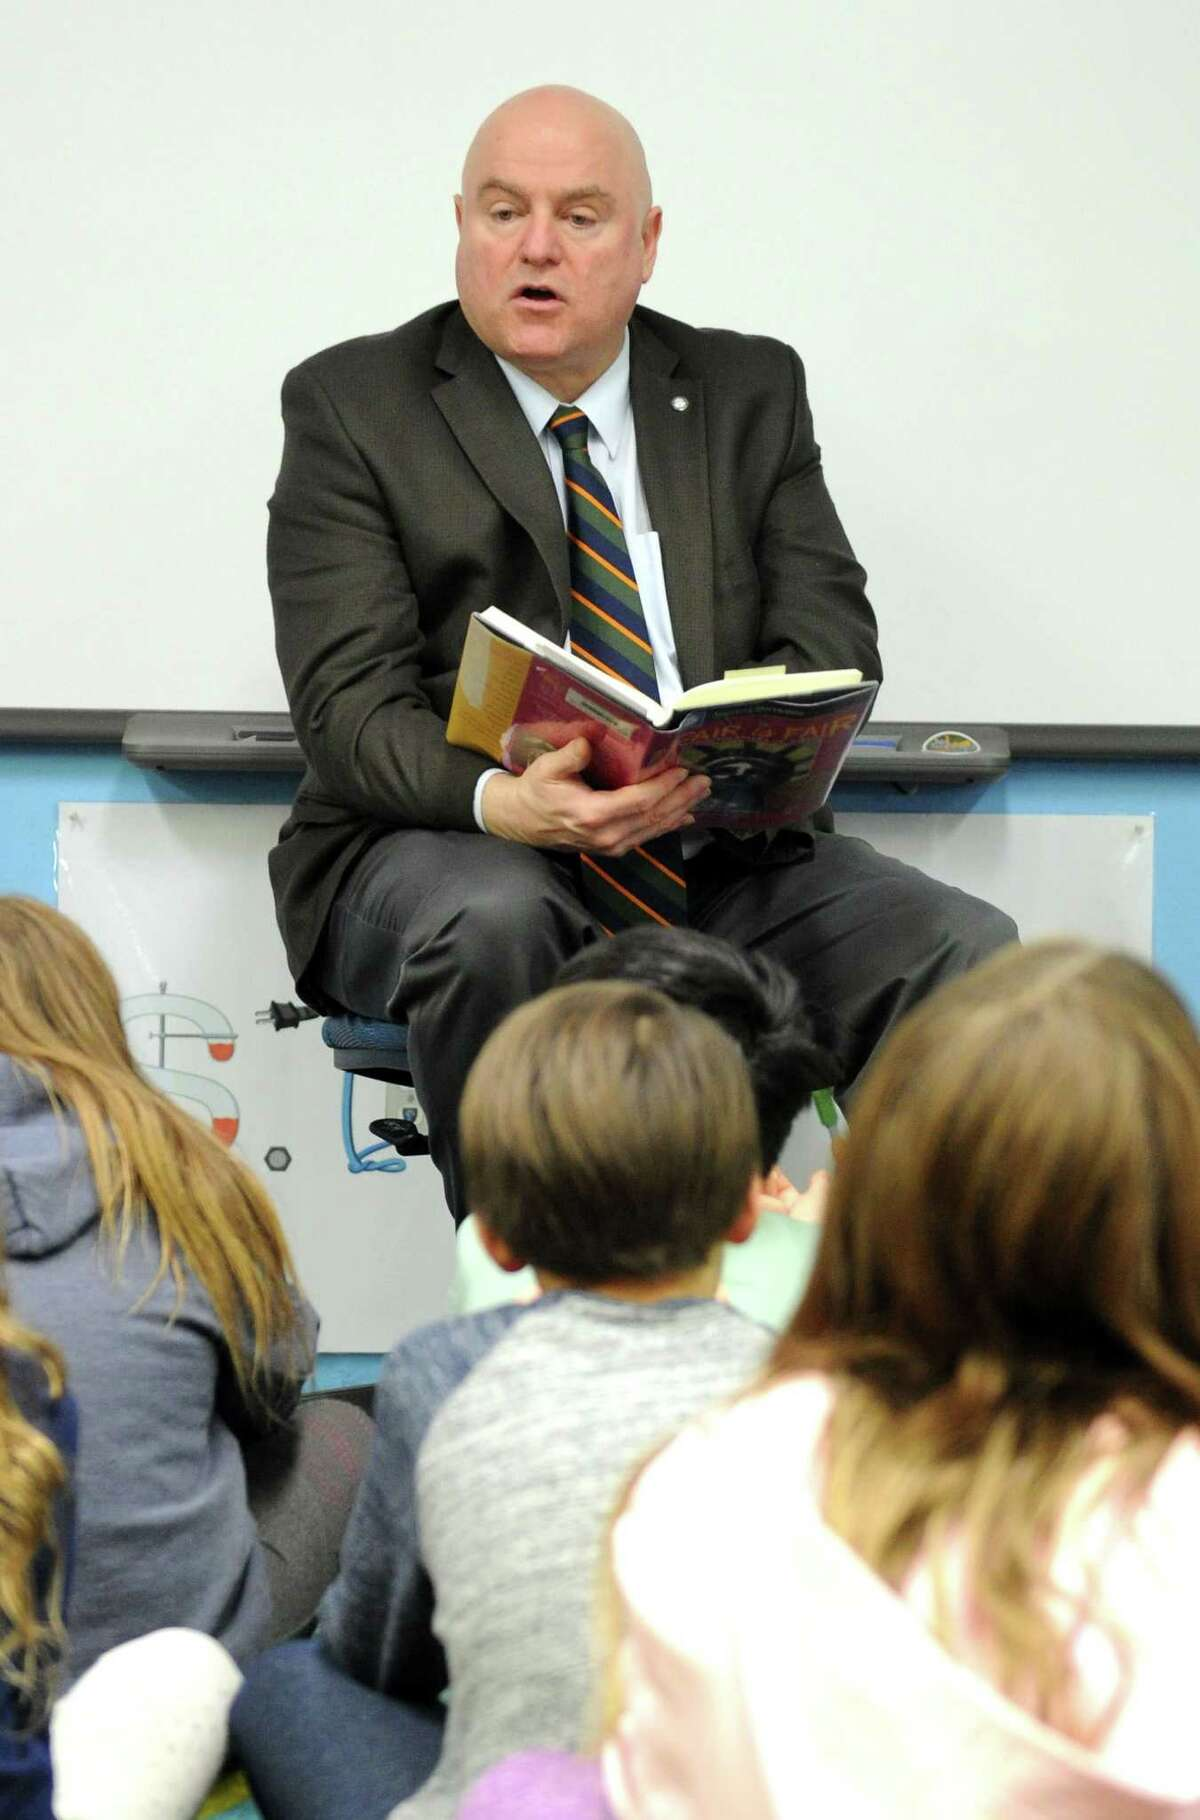 """Stamford Judge John Blawie reads """"The Stolen Smells"""" from the book Fair is Fair; World Folktales of Justice, a collection of short stories curated by Sharon Creeden to third-graders at Parkway School in Greenwich, Conn. on Feb. 28, 2019. Blawie was participating in Read Across America, a program that promotes literacy and his readings tied in with the students current social studies curriculum."""